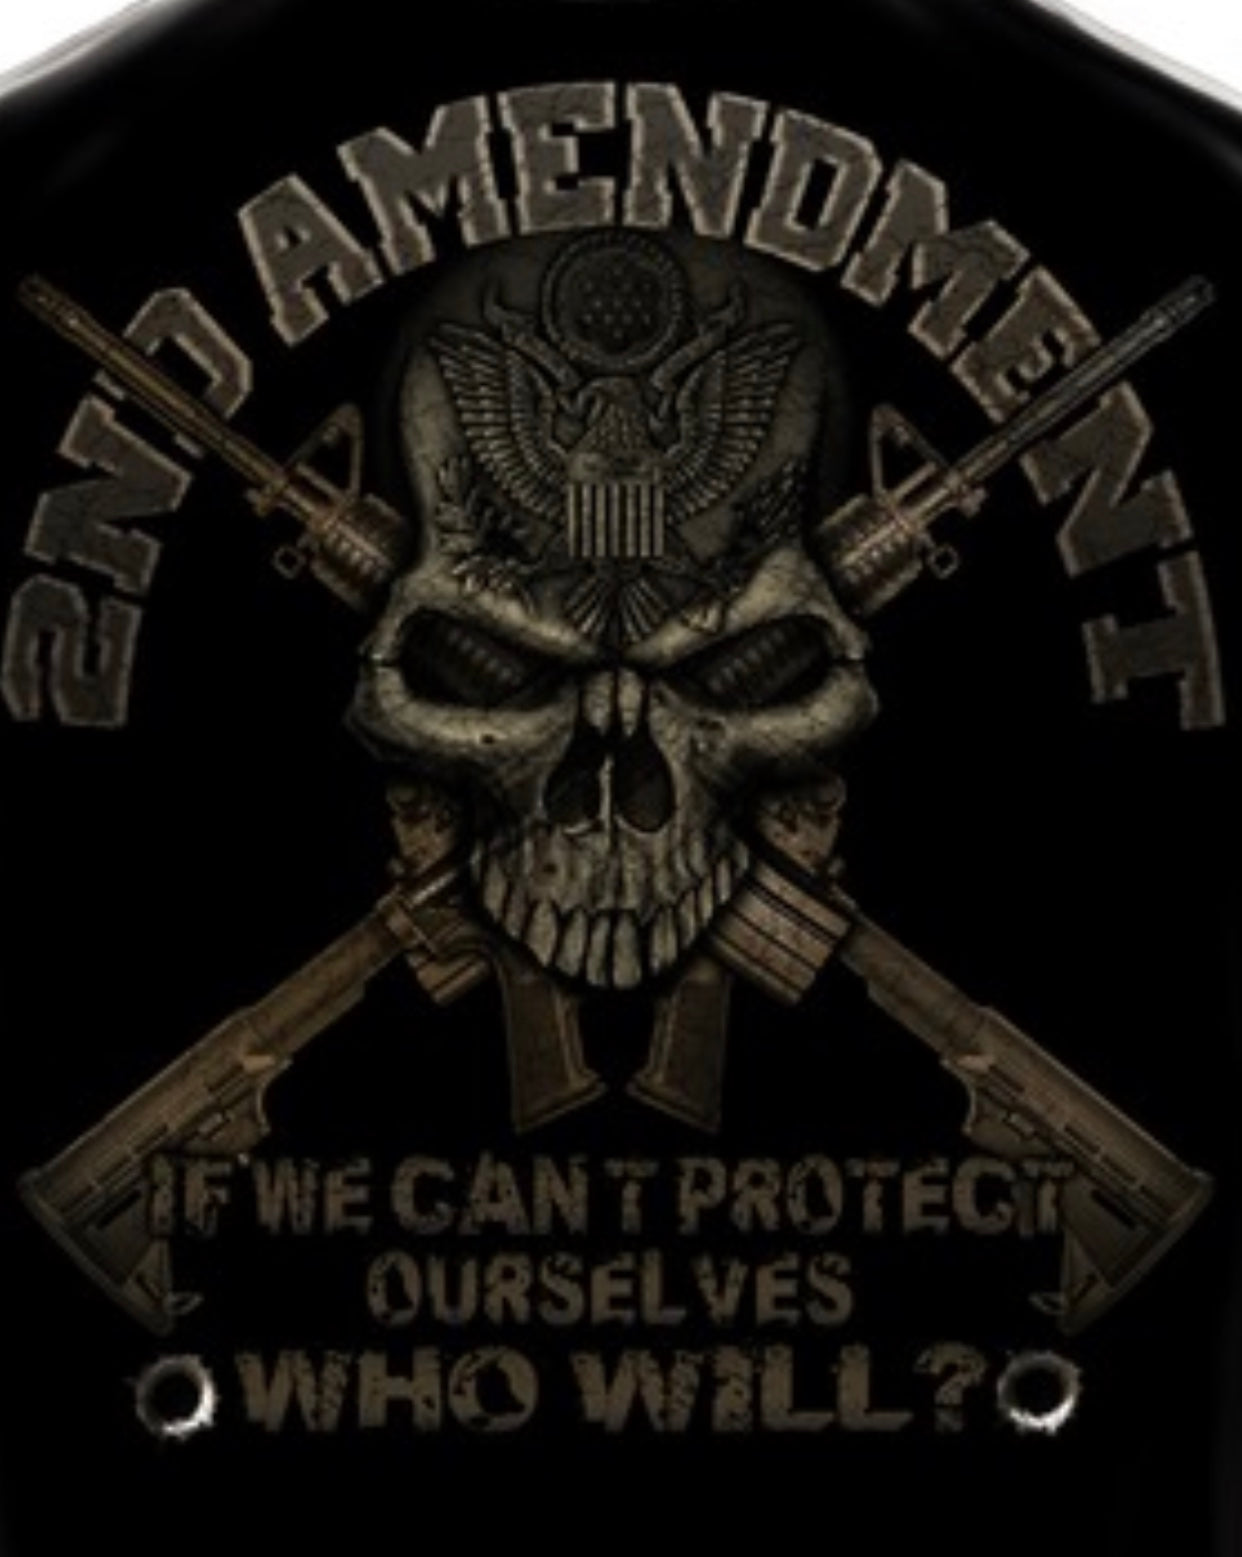 2nd Amendment Skull Can't Protect Ours Selves T-Shirts - The Wall Kids, Inc.